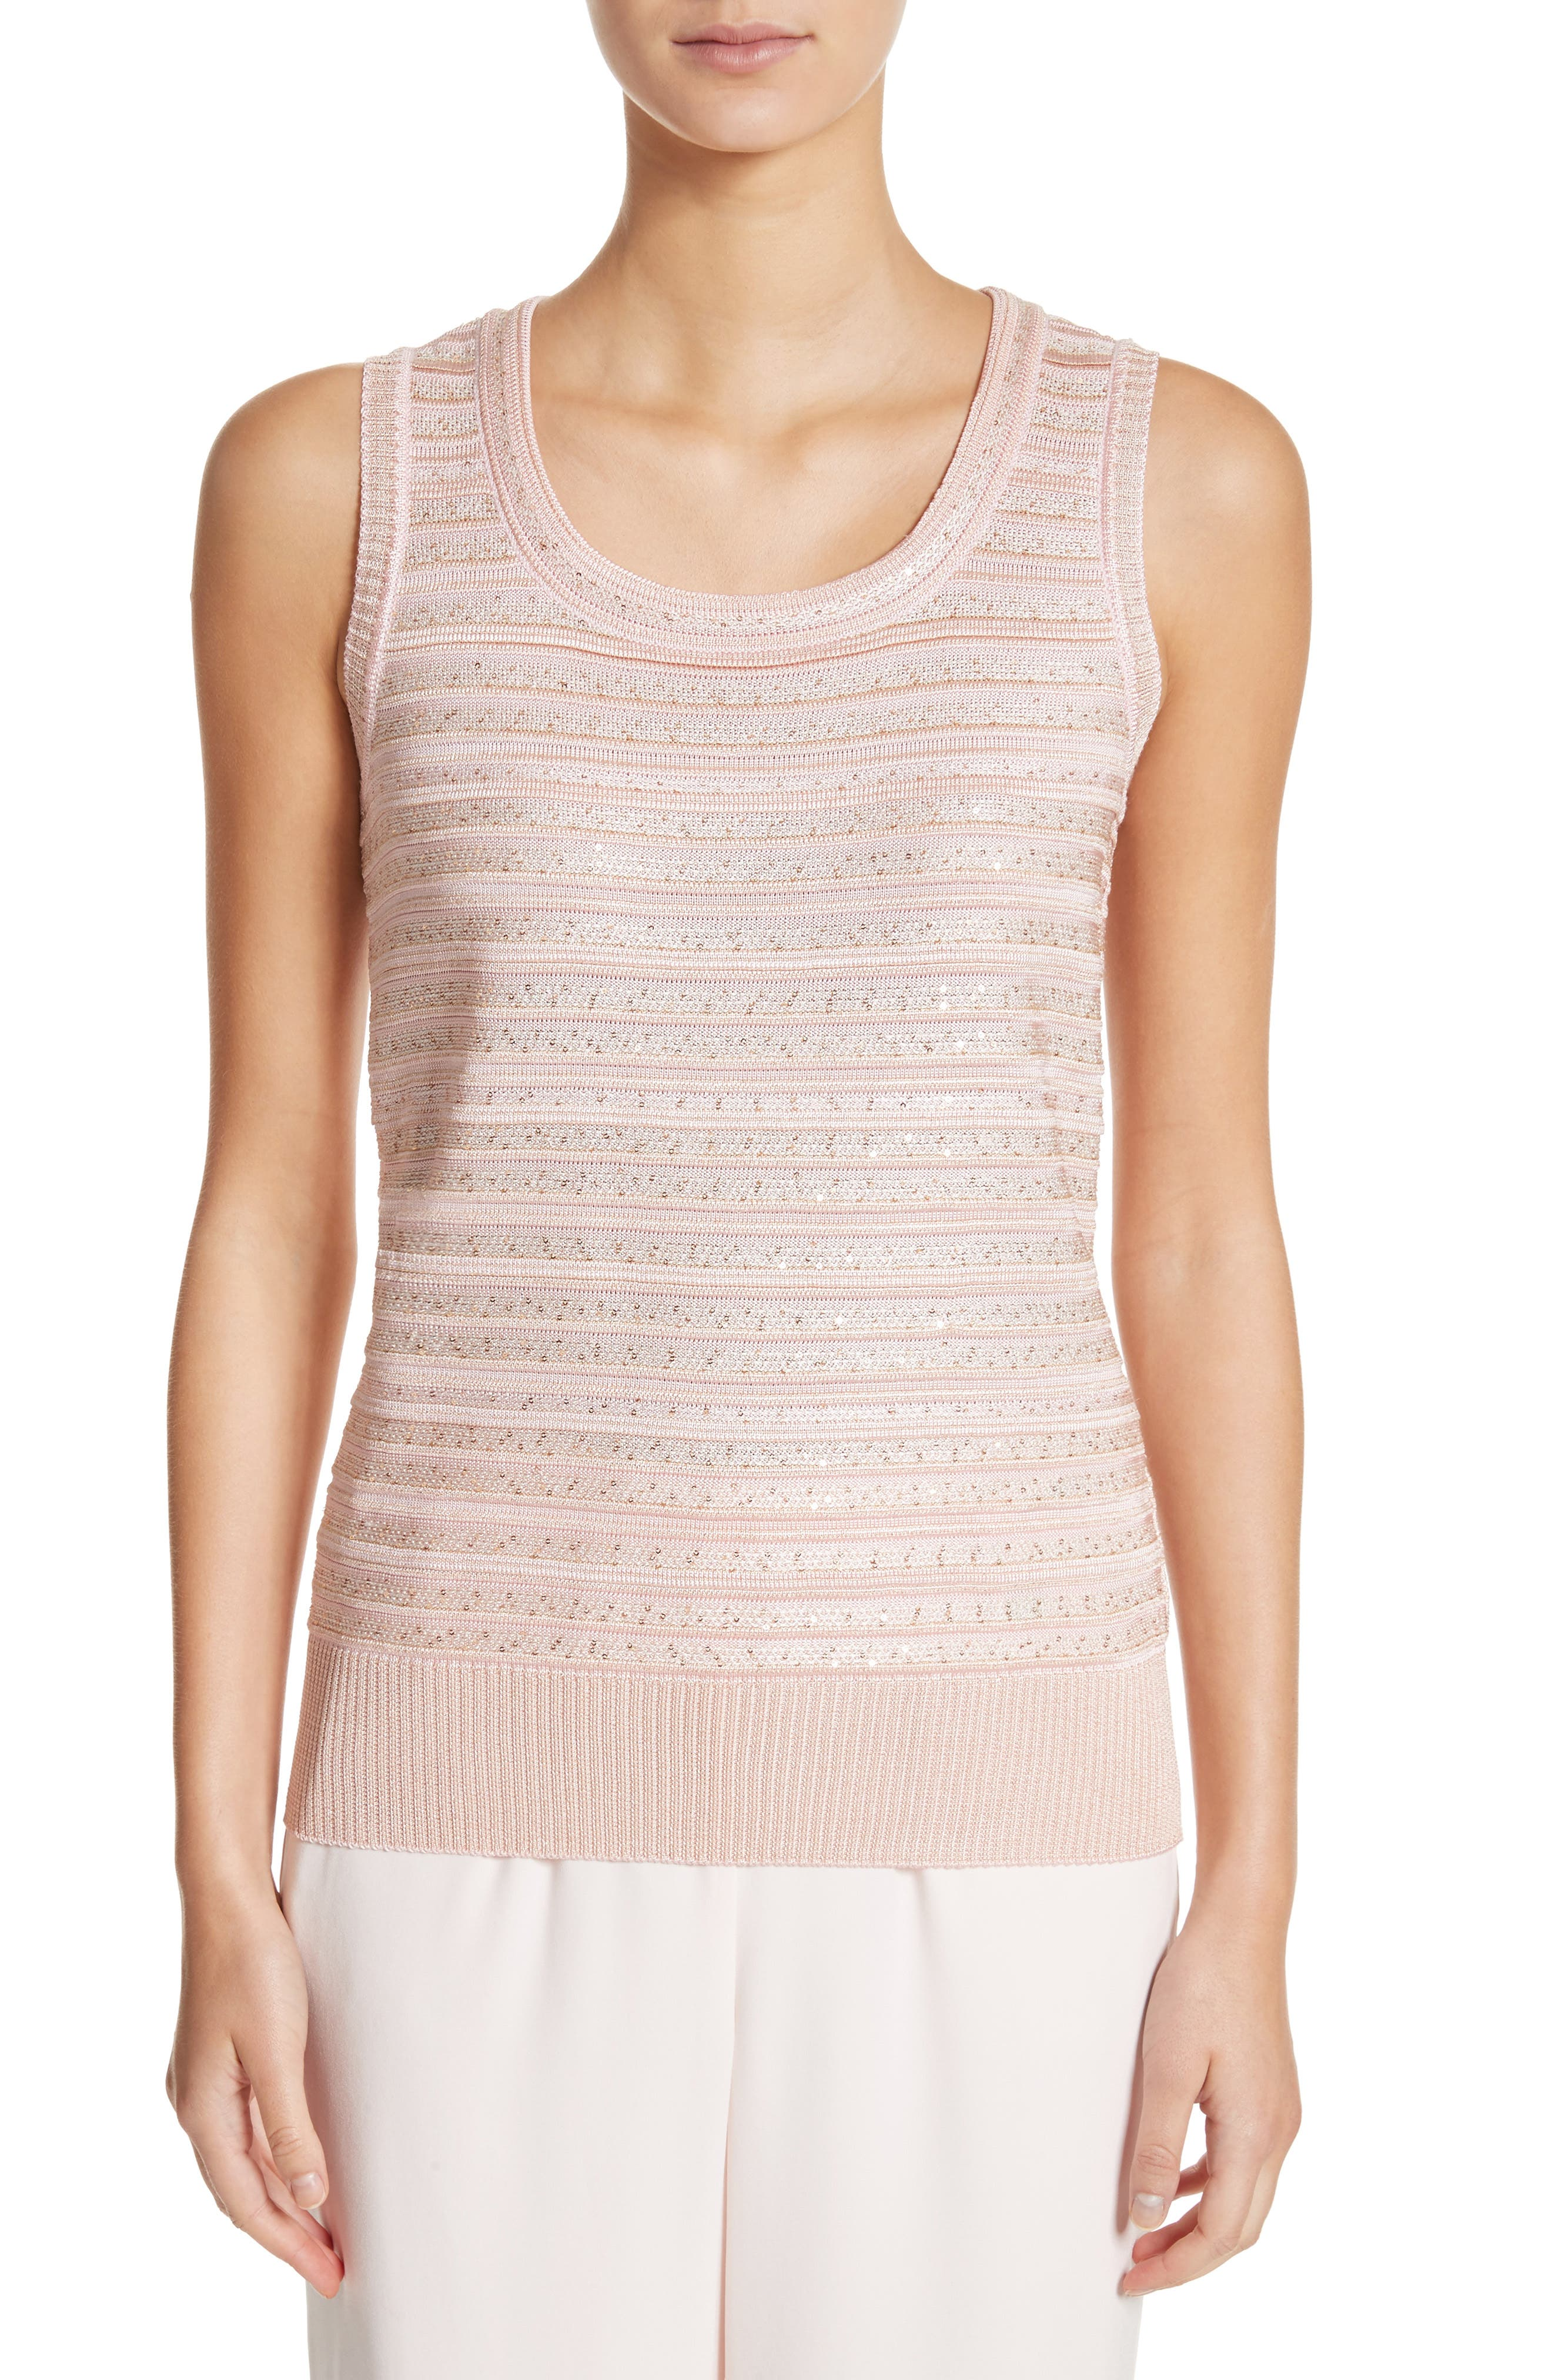 Main Image - St. John Collection Welted Sequin Knit Shell